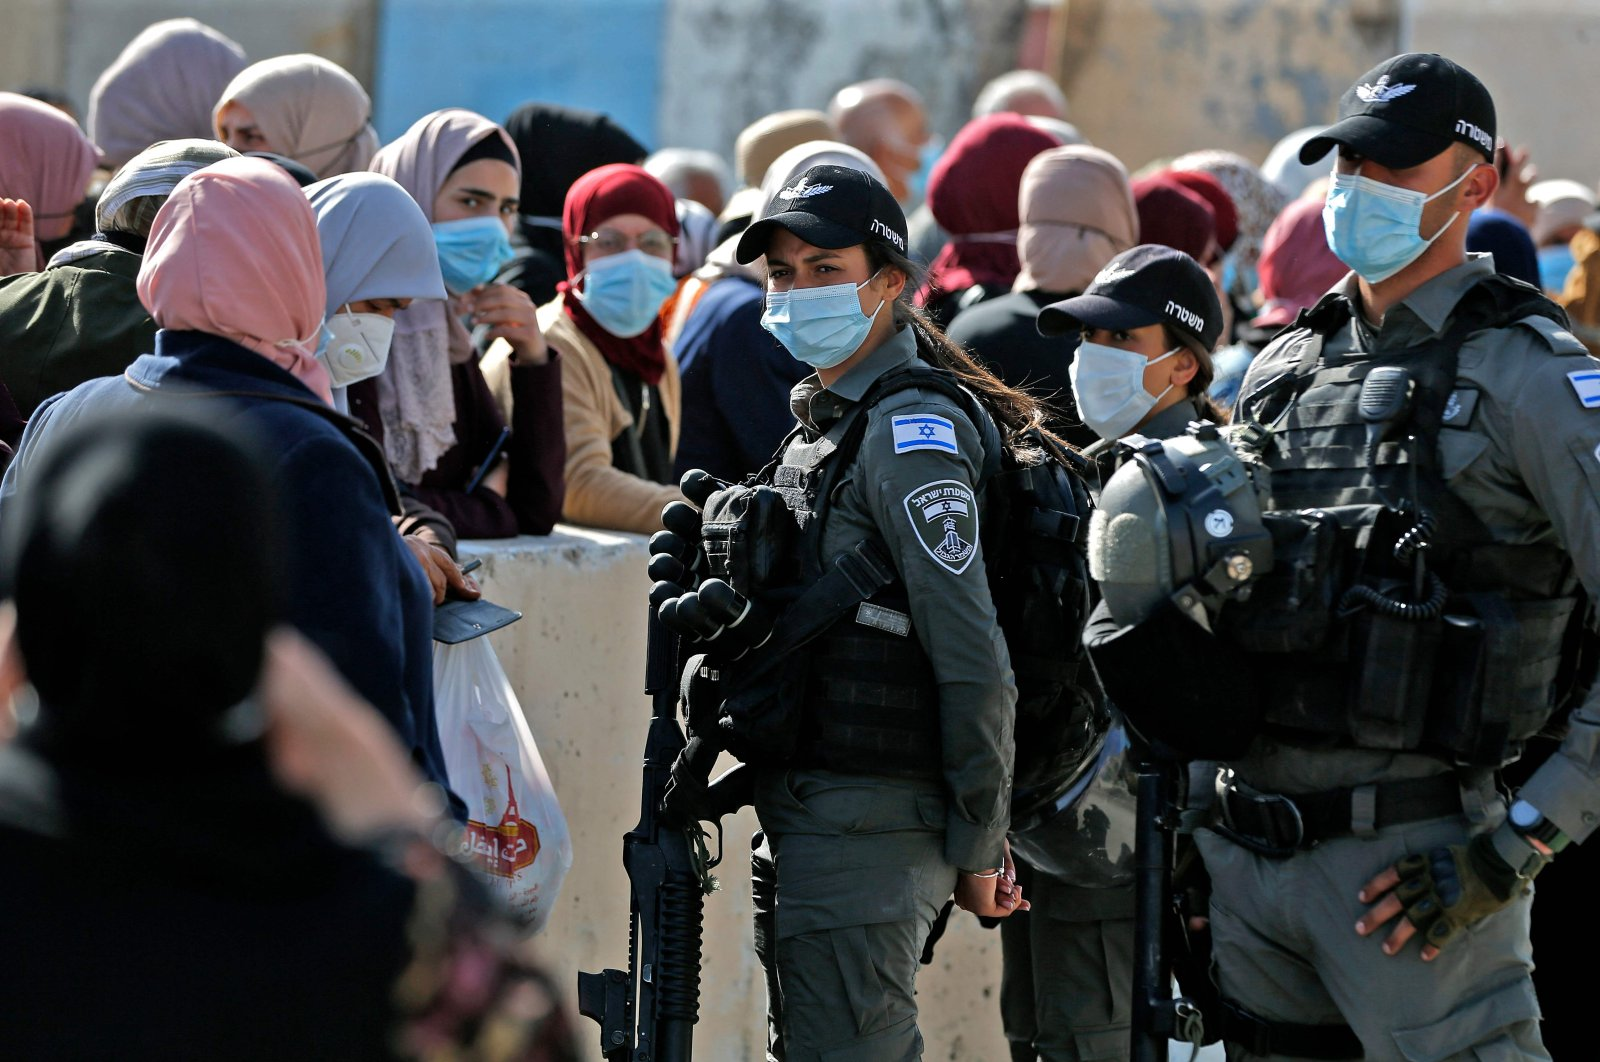 Members of the Israeli security forces man the Qalandia checkpoint near the West Bank town of Ramallah, as Palestinian women wait to enter Jerusalem to attend the first Friday prayers of the Muslim fasting month of Ramadan at the Al-Aqsa Mosque, on April 16, 2021. (AFP Photo)